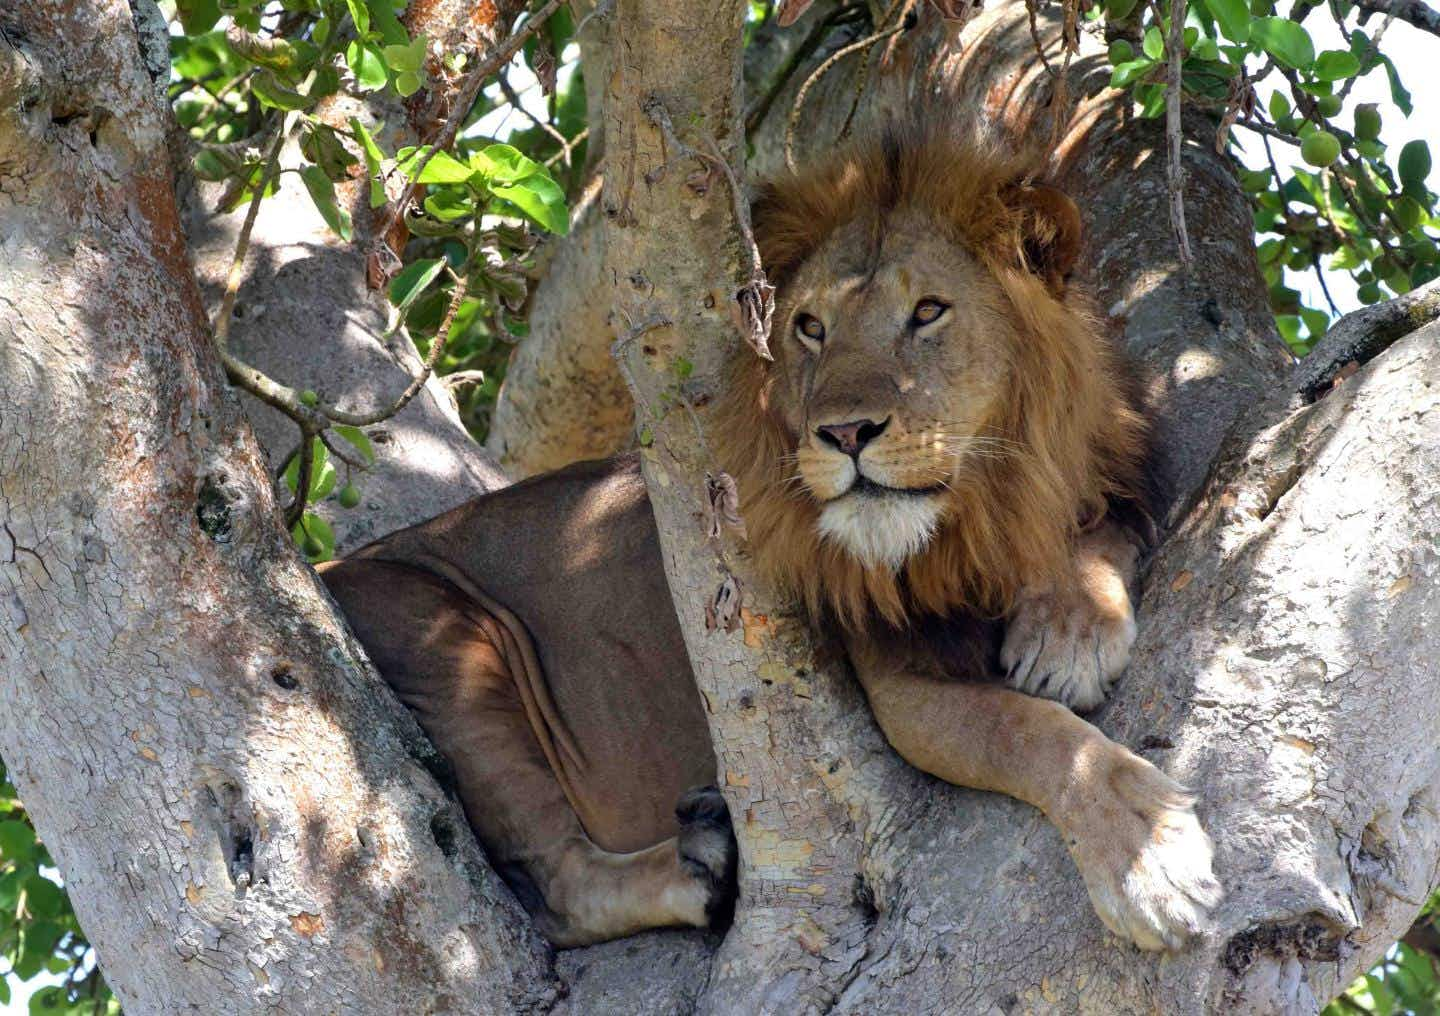 What has Uganda's famous tree-climbing lions roaming further from their natural habitat?